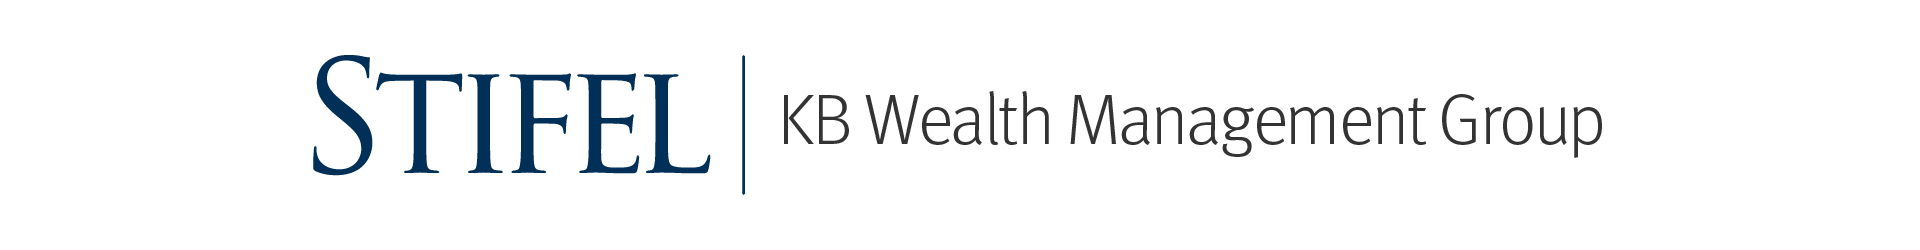 Stifel | KB Wealth Management Group